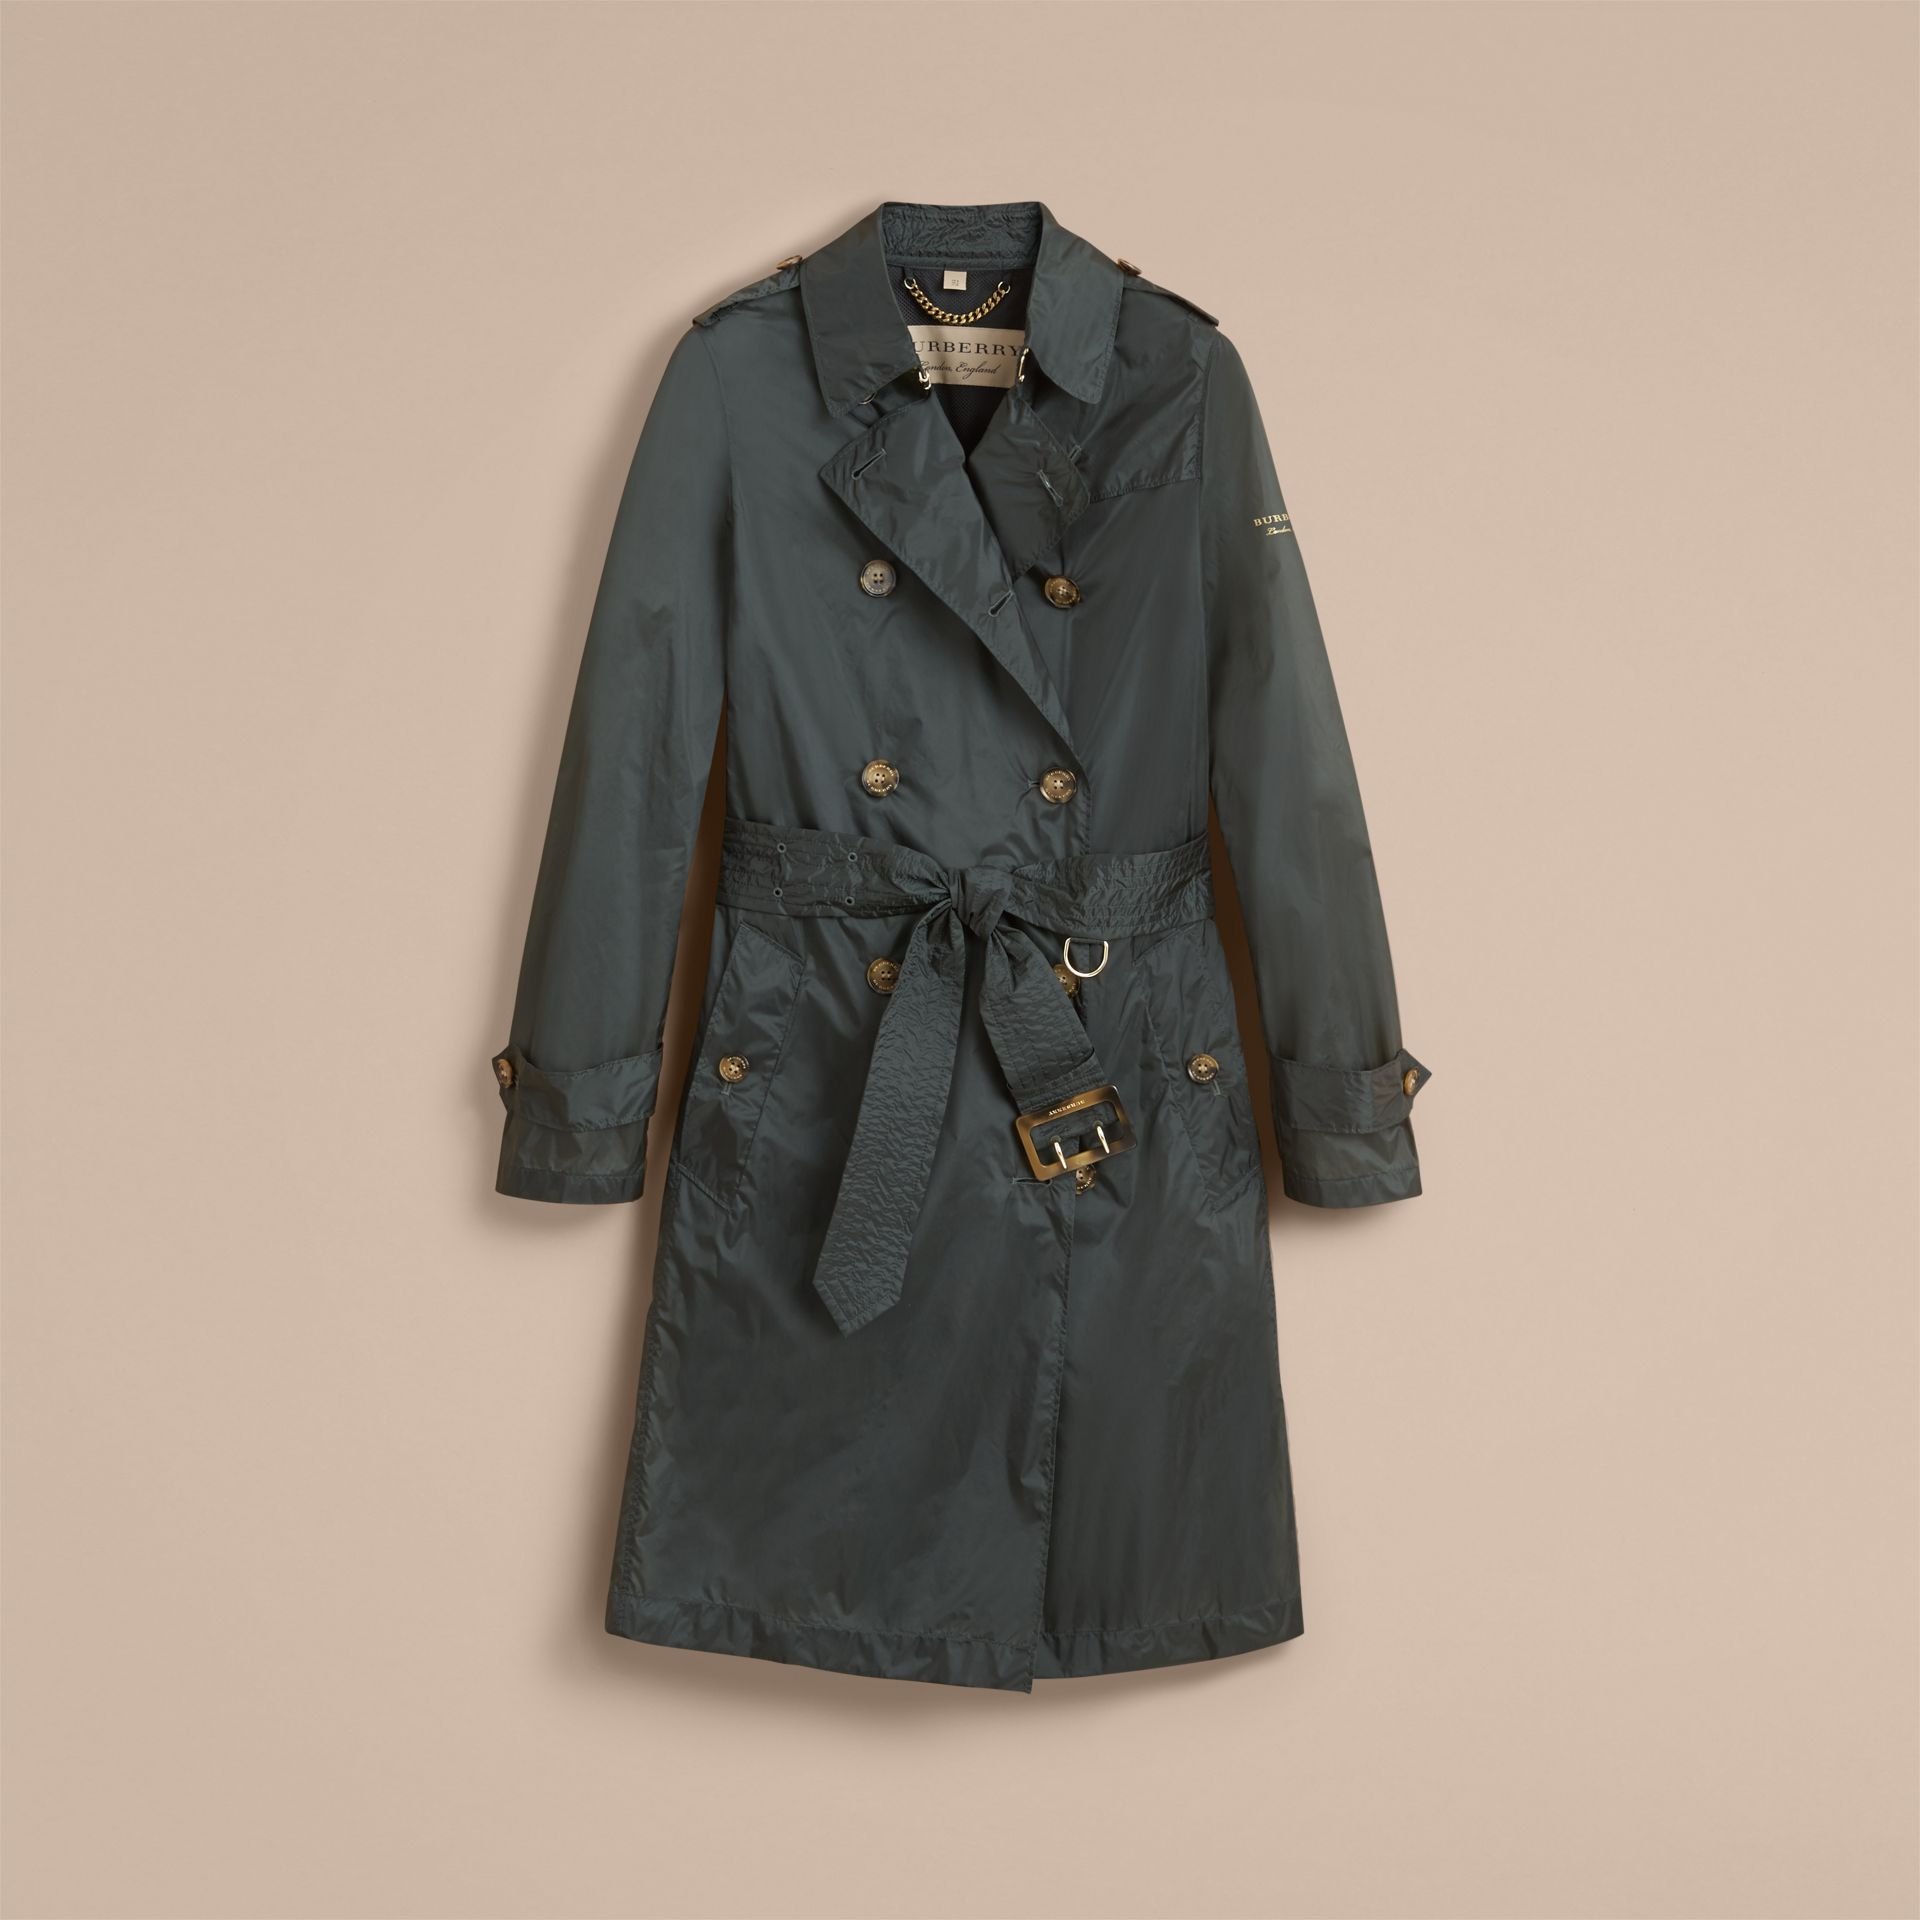 Super-lightweight Trench Coat in Vintage Green - Women | Burberry - gallery image 4